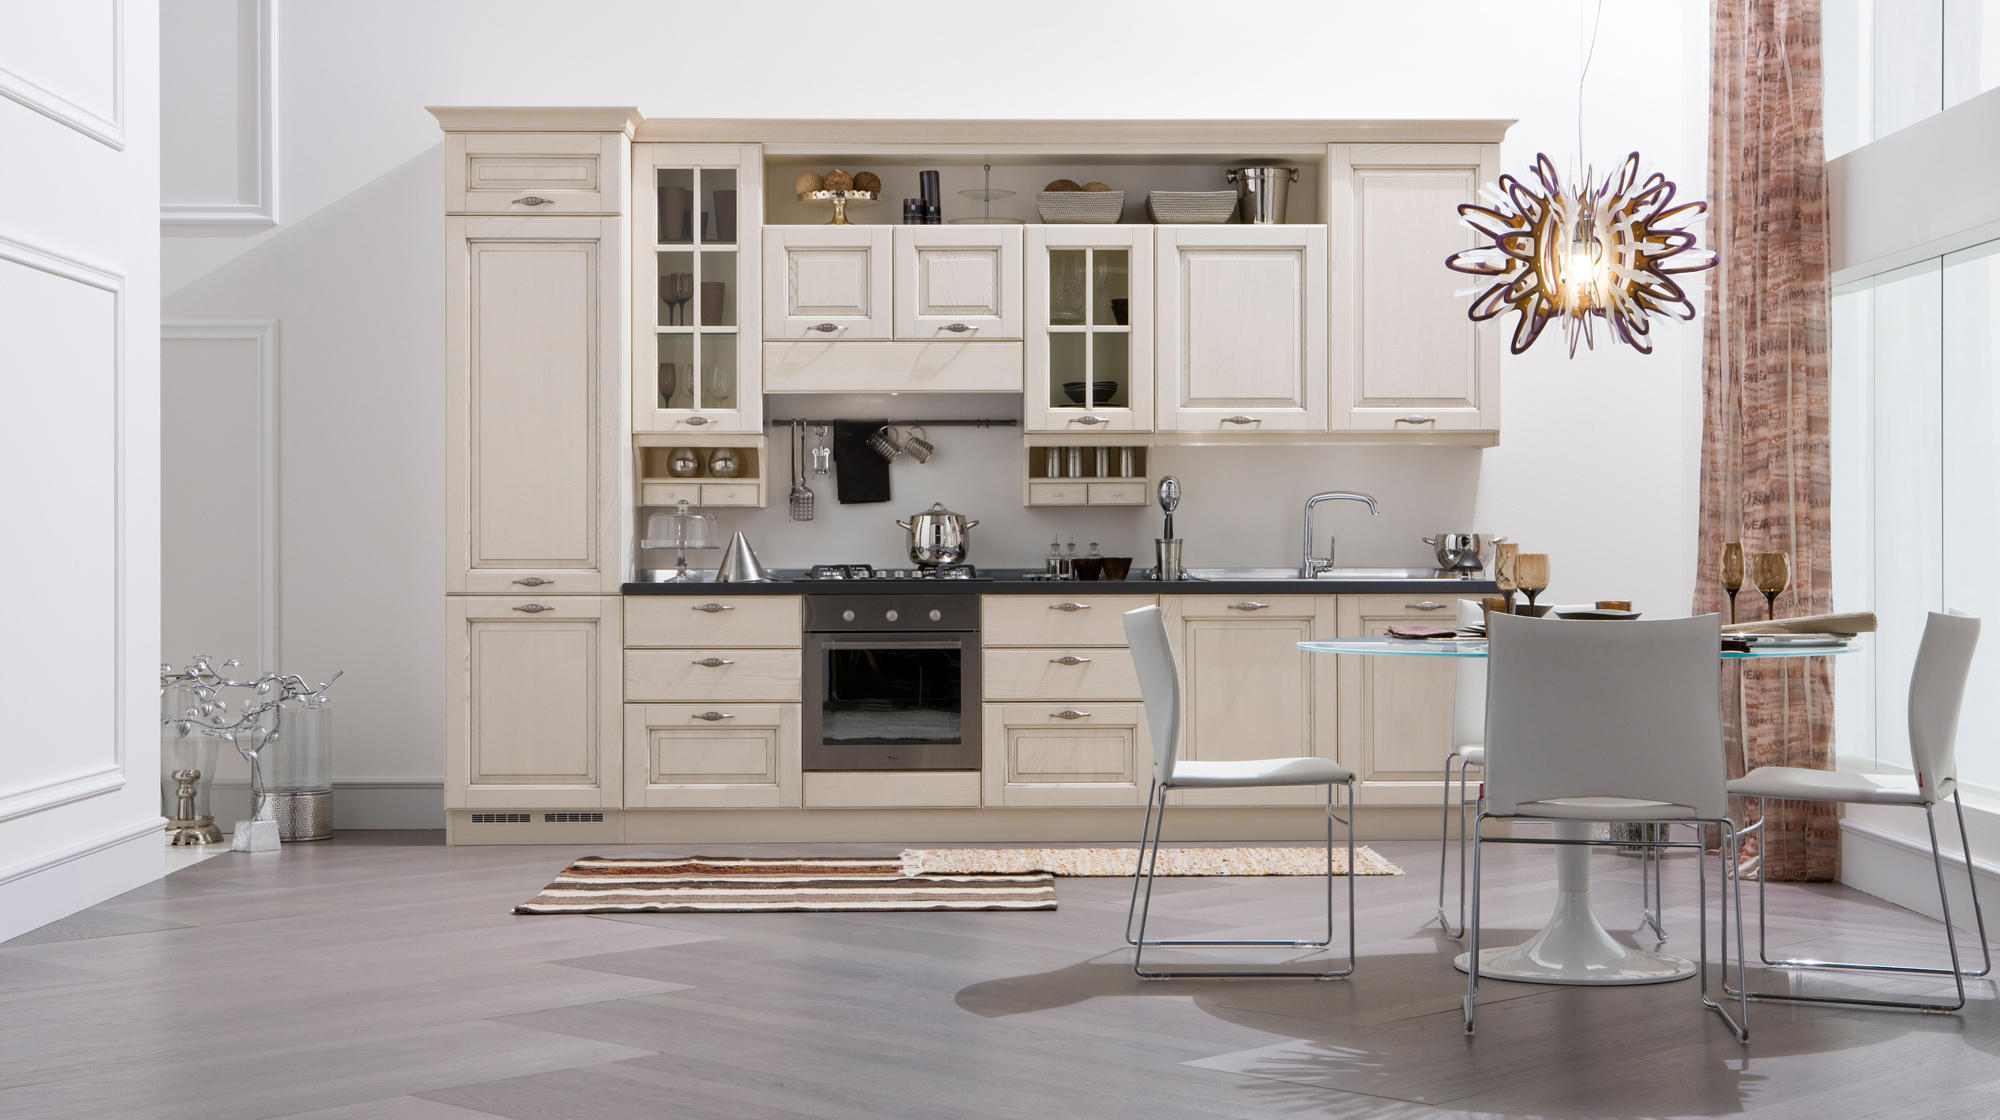 memory fitted kitchens from veneta cucine architonic. Black Bedroom Furniture Sets. Home Design Ideas